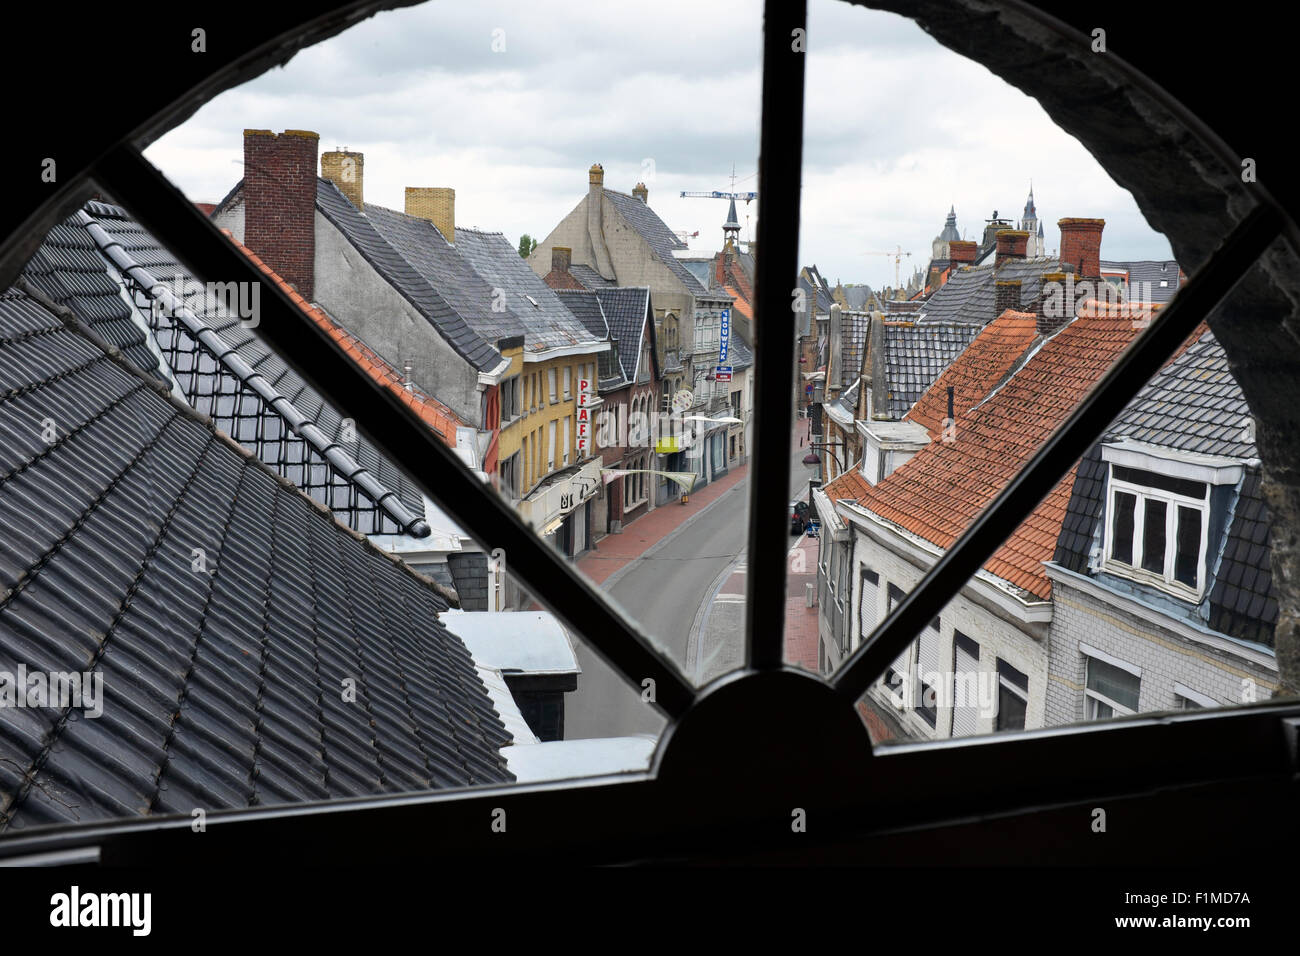 View from the window of the chapel, or 'Upper Room' in Talbot House, Poperinge, Belgium - Stock Image